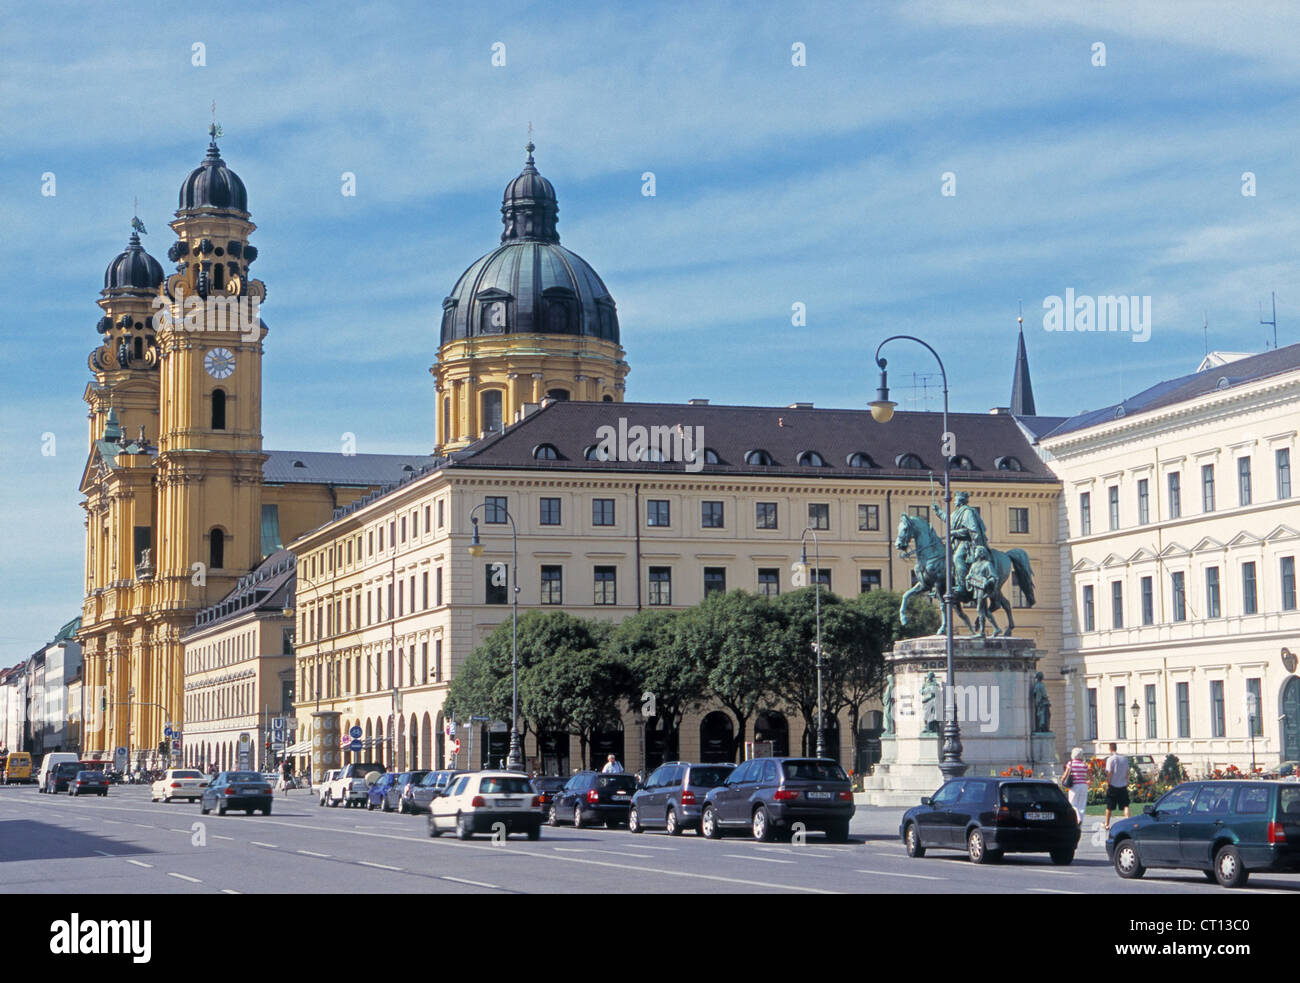 The Theatinerkirche and ministerial buildings in Munich - Stock Image